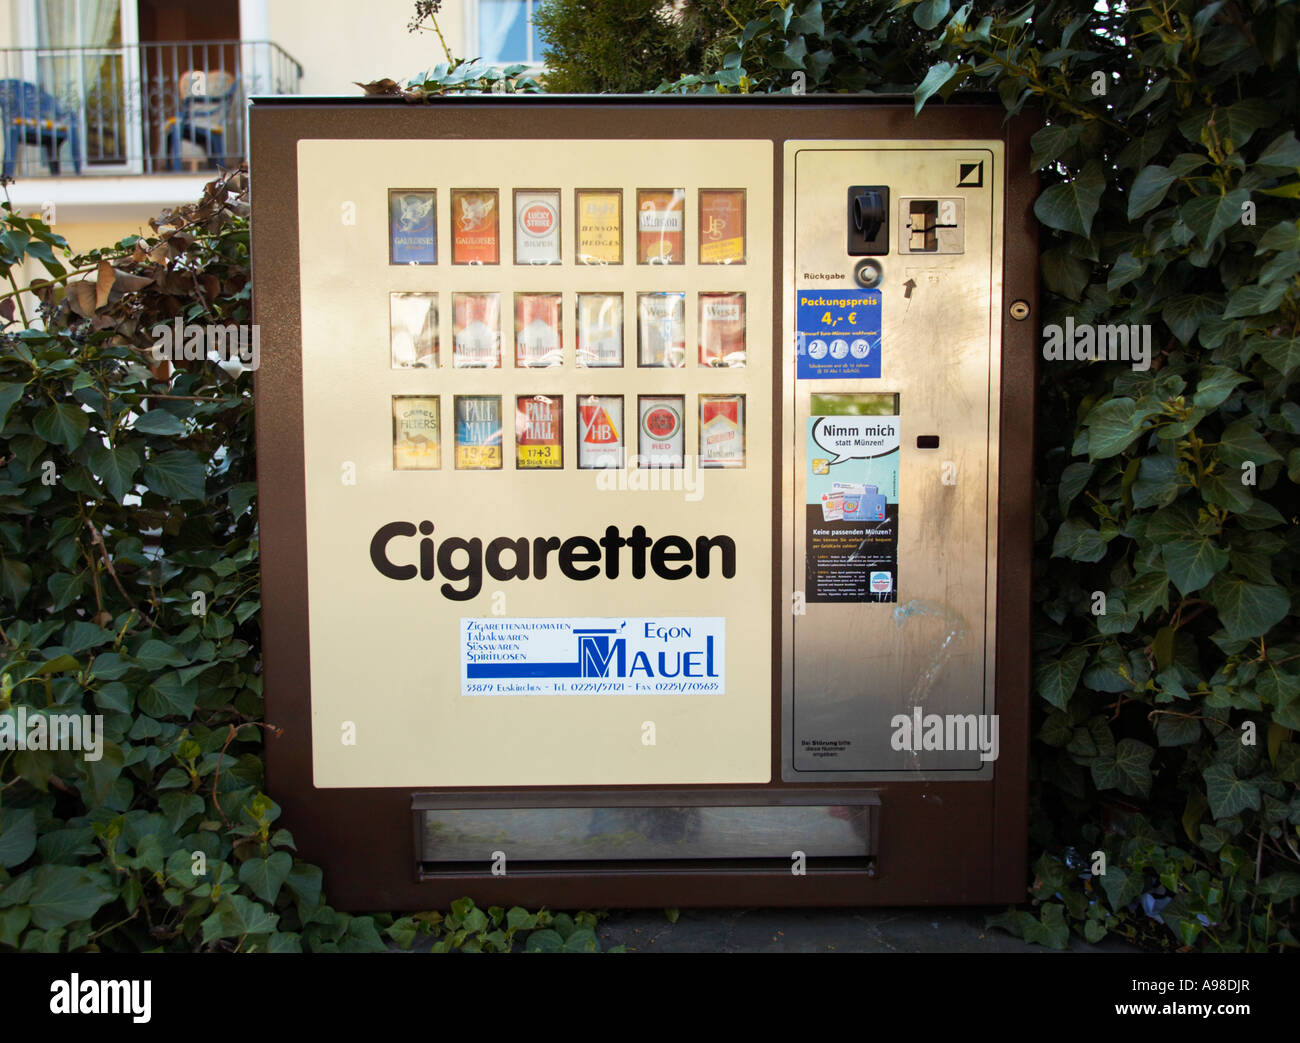 How much do Marlboro special blend cigarettes cost